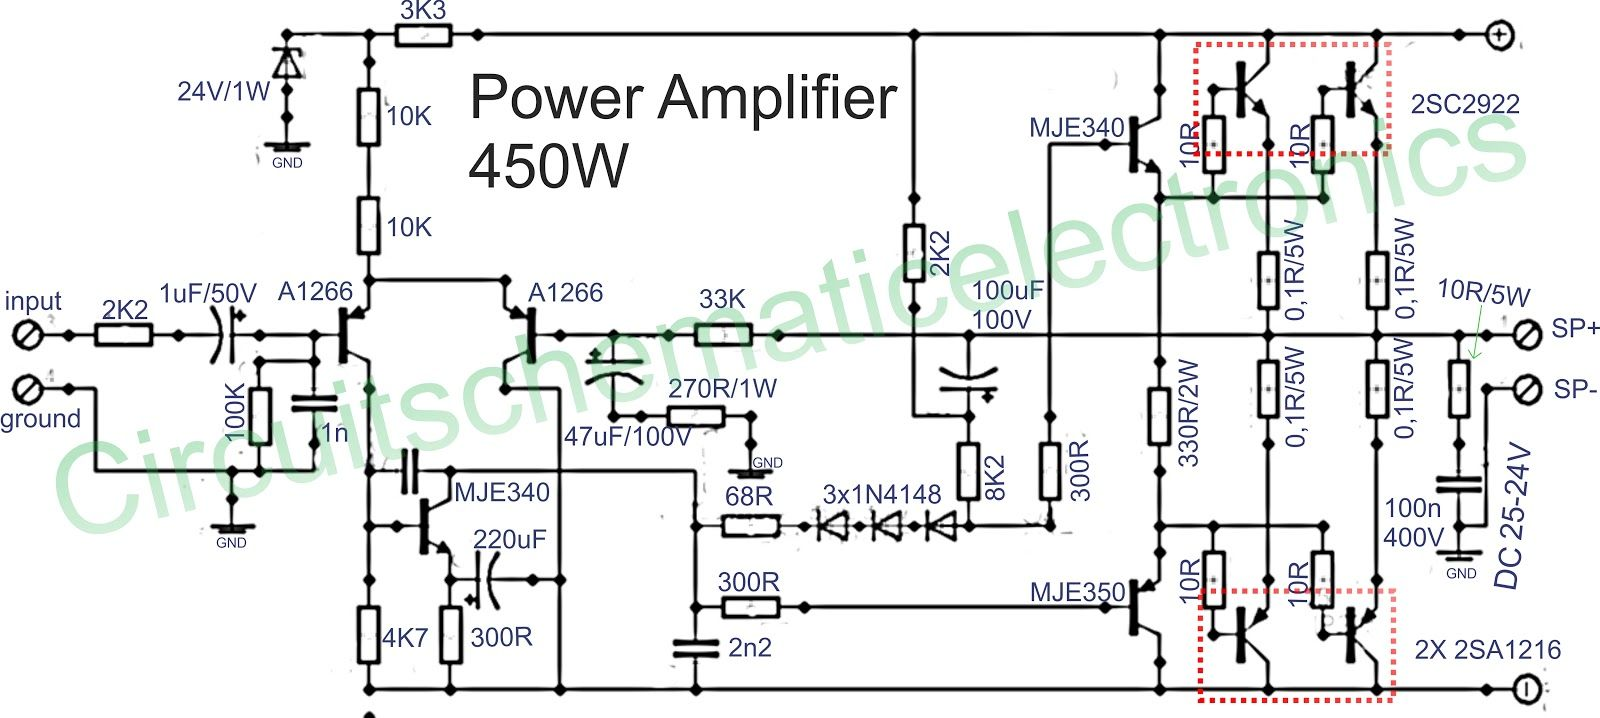 hight resolution of 1500w power amplifier circuit and components layout circuit of power amplifiers with power output of